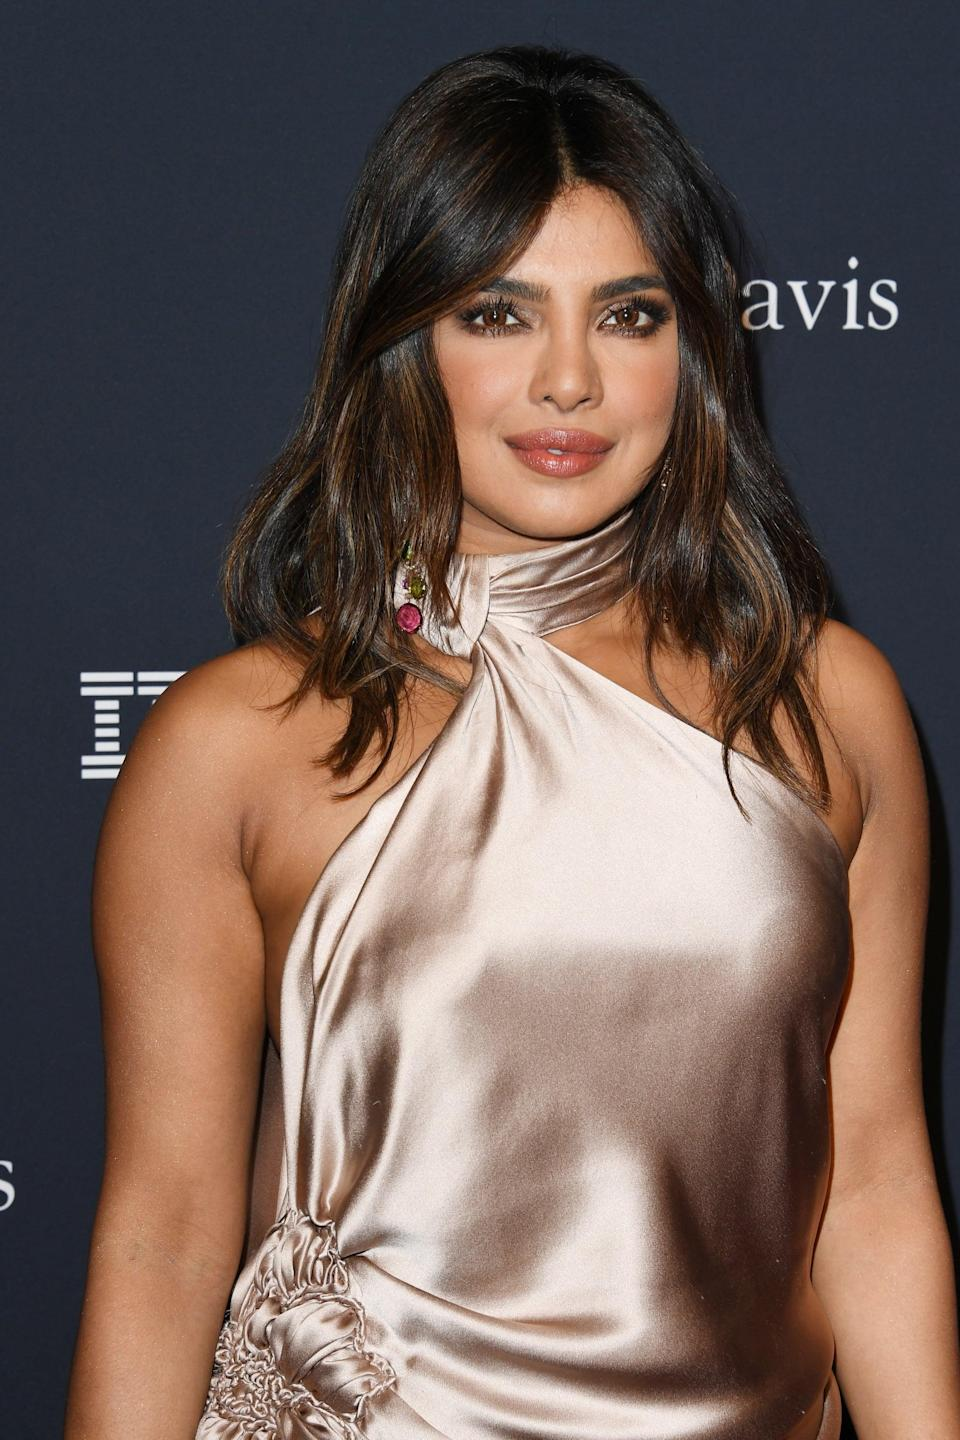 "<p>Priyanka Chopra revealed in her memoir that she received a botched polypectomy early on in her career when her surgeon accidentally shaved the bridge of her nose while trying to remove the tissue.</p> <p>""My original nose was gone. My face looked completely different. I wasn't me anymore,"" she wrote. Chopra has since had several more surgeries to restore her original nose, though she admitted that she's gotten ""accustomed"" to her face. ""Now when I look in the mirror, I am no longer surprised,"" she wrote. ""I've made peace with this slightly different me.""</p>"